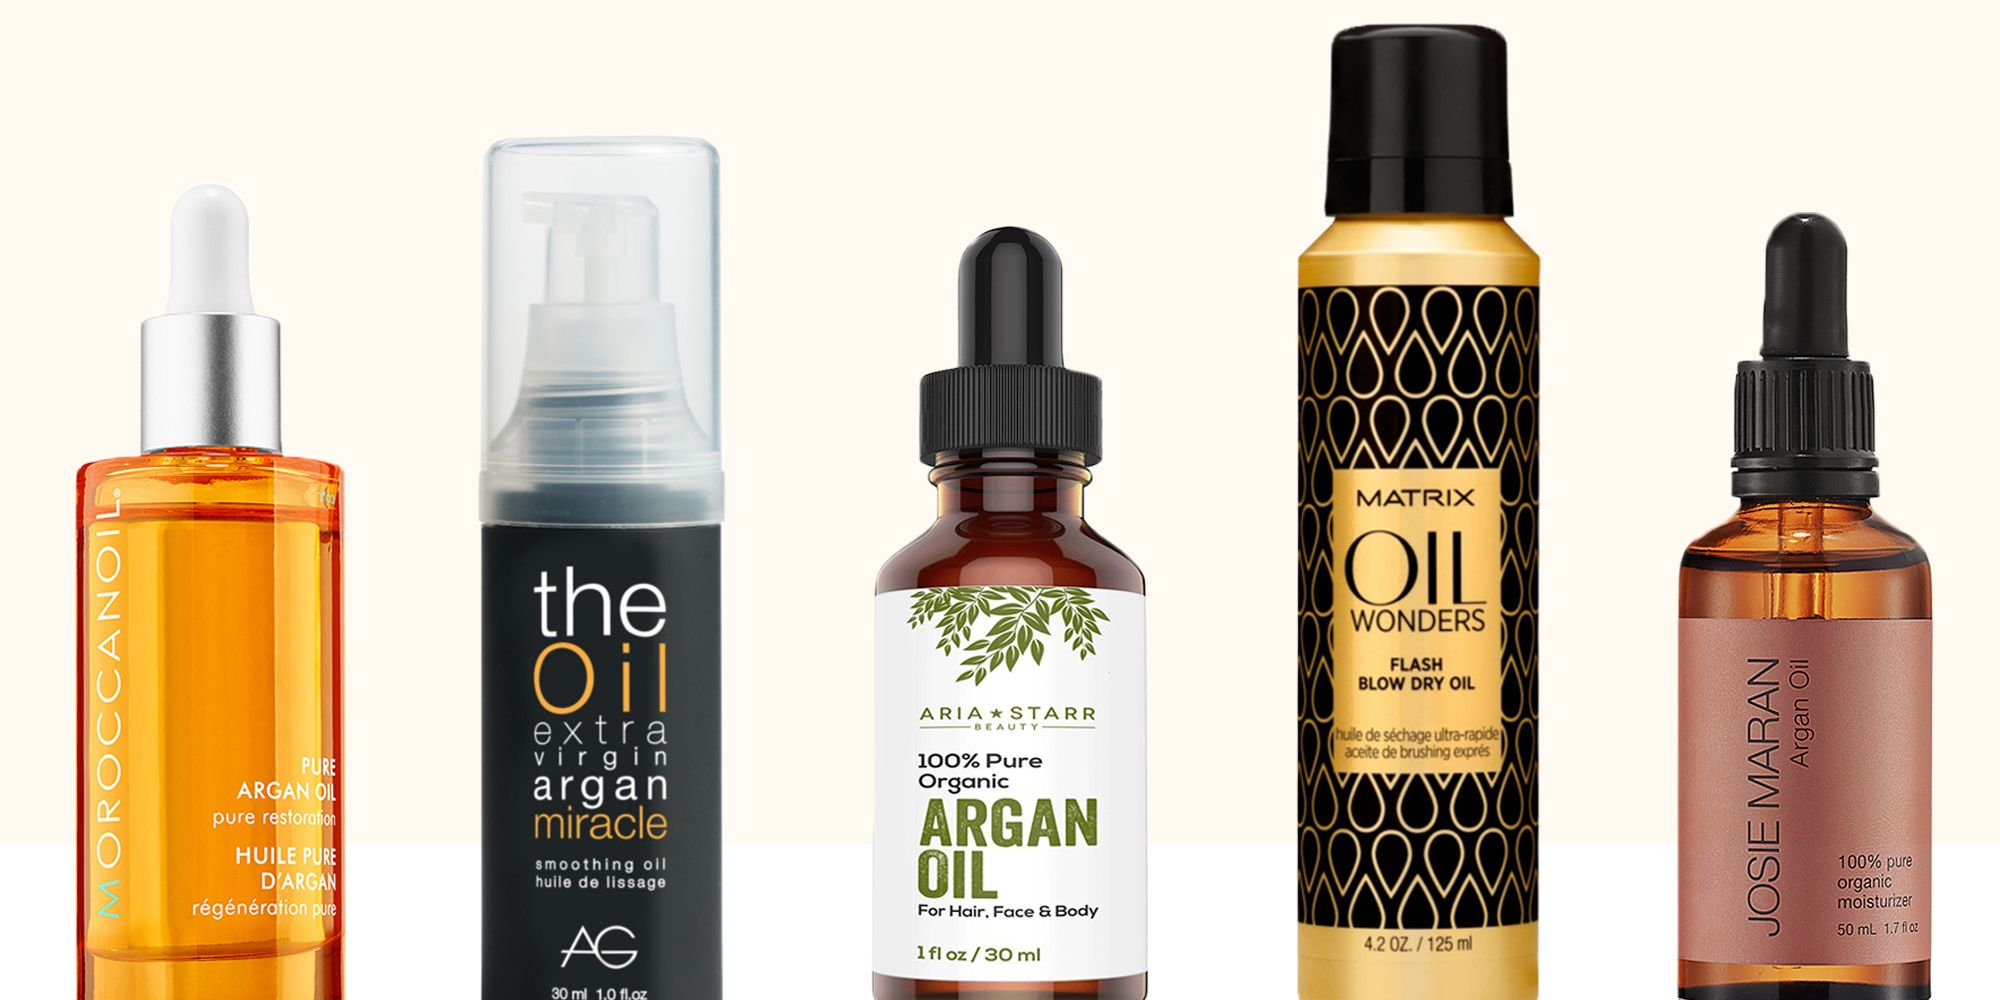 11 Best Argan Oil Products For Hair In 2018 Treatment